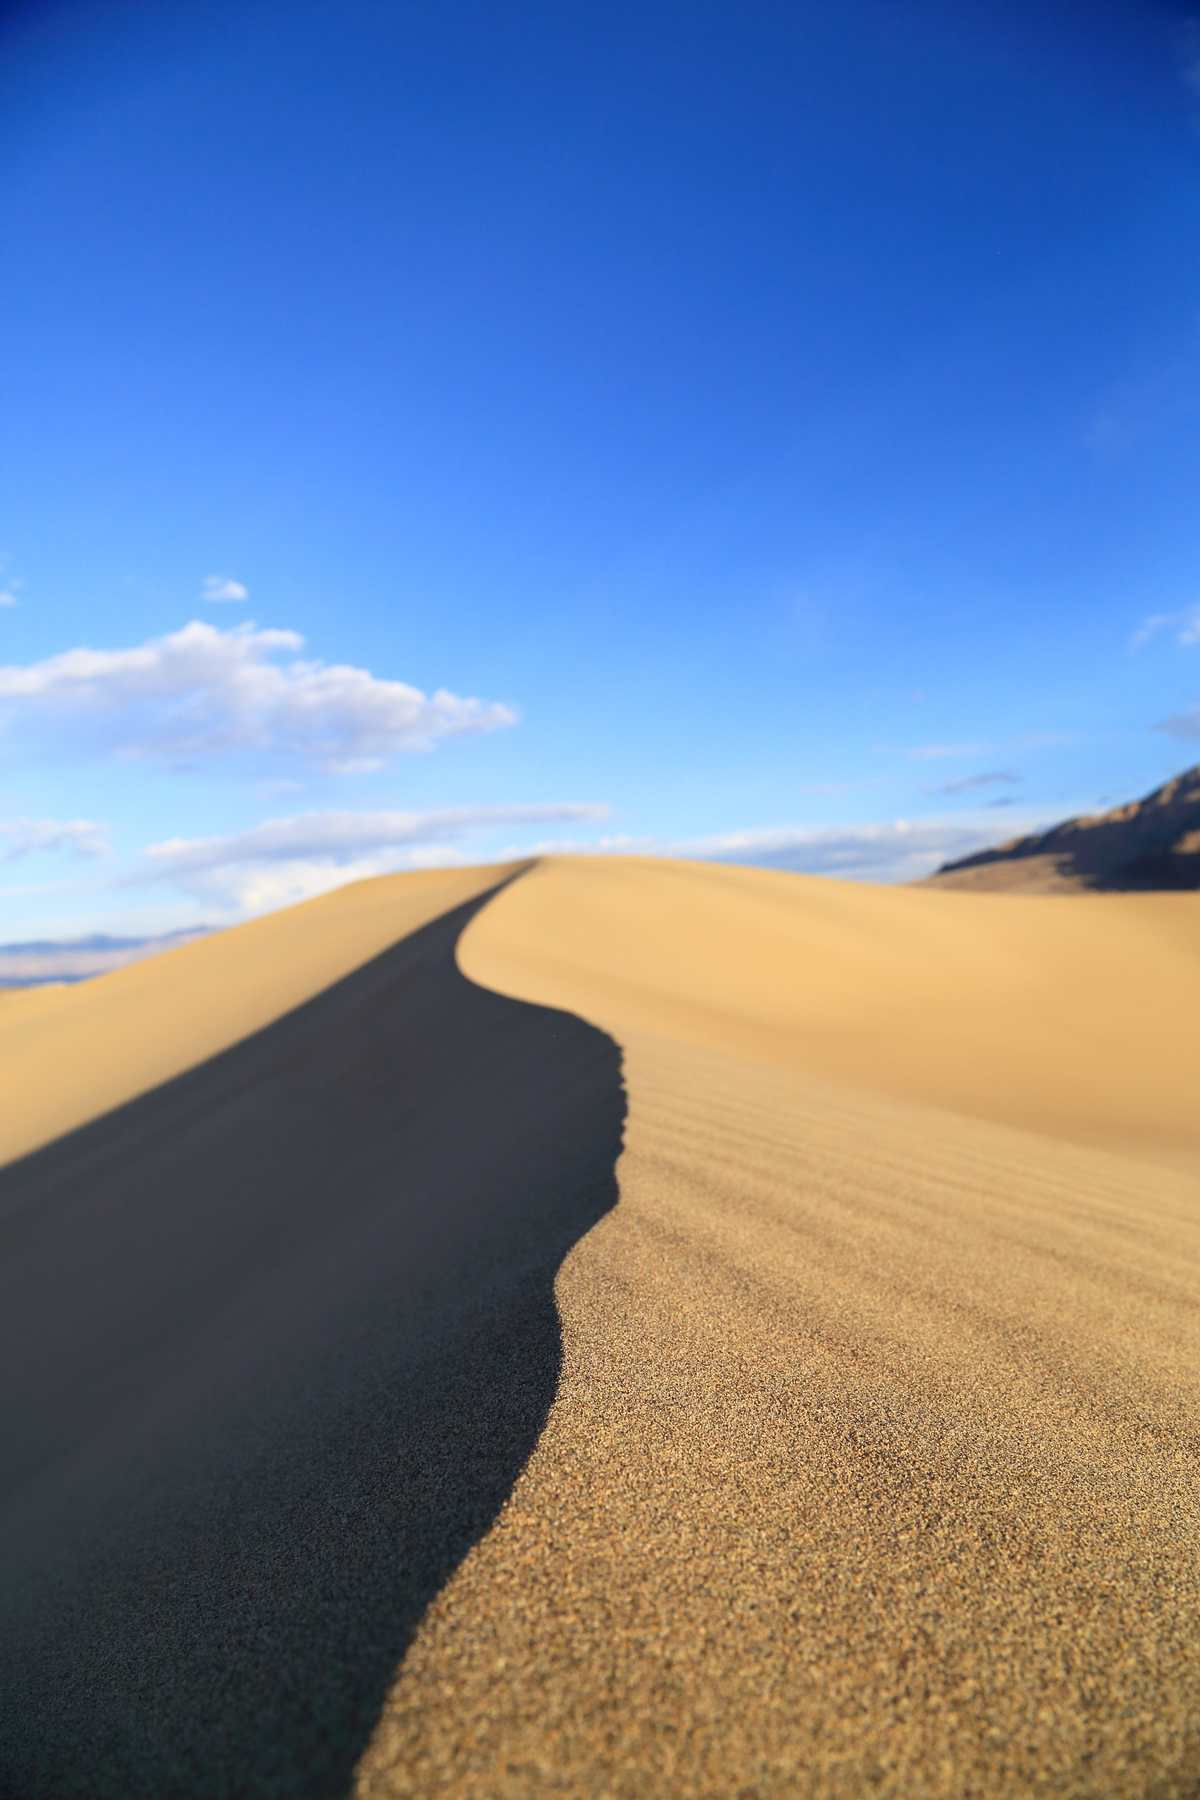 Looking across a ridge of a sand dune